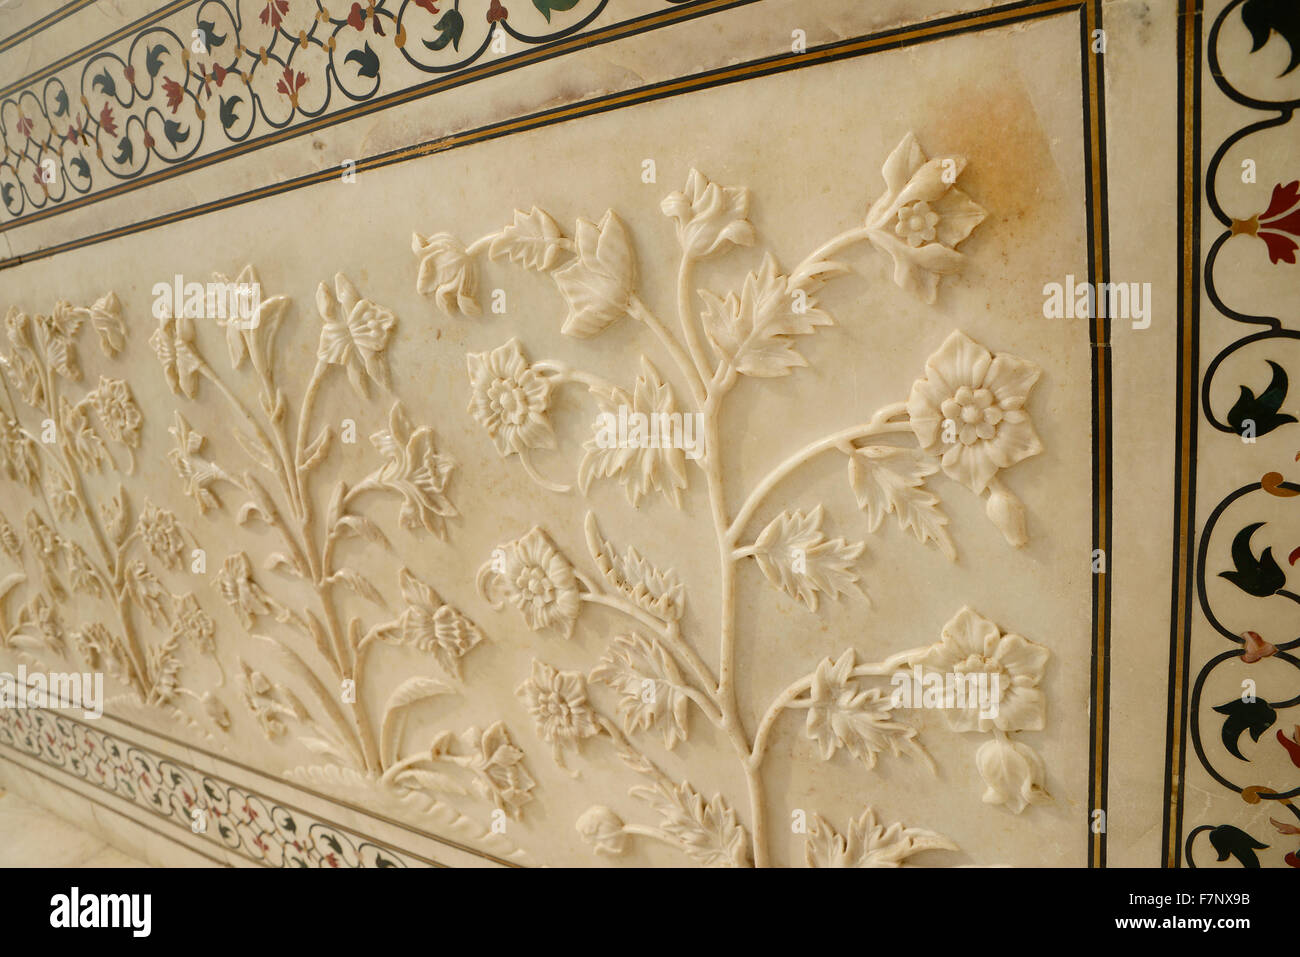 Mughal Wall Decoration Stock Photos & Mughal Wall Decoration Stock ...